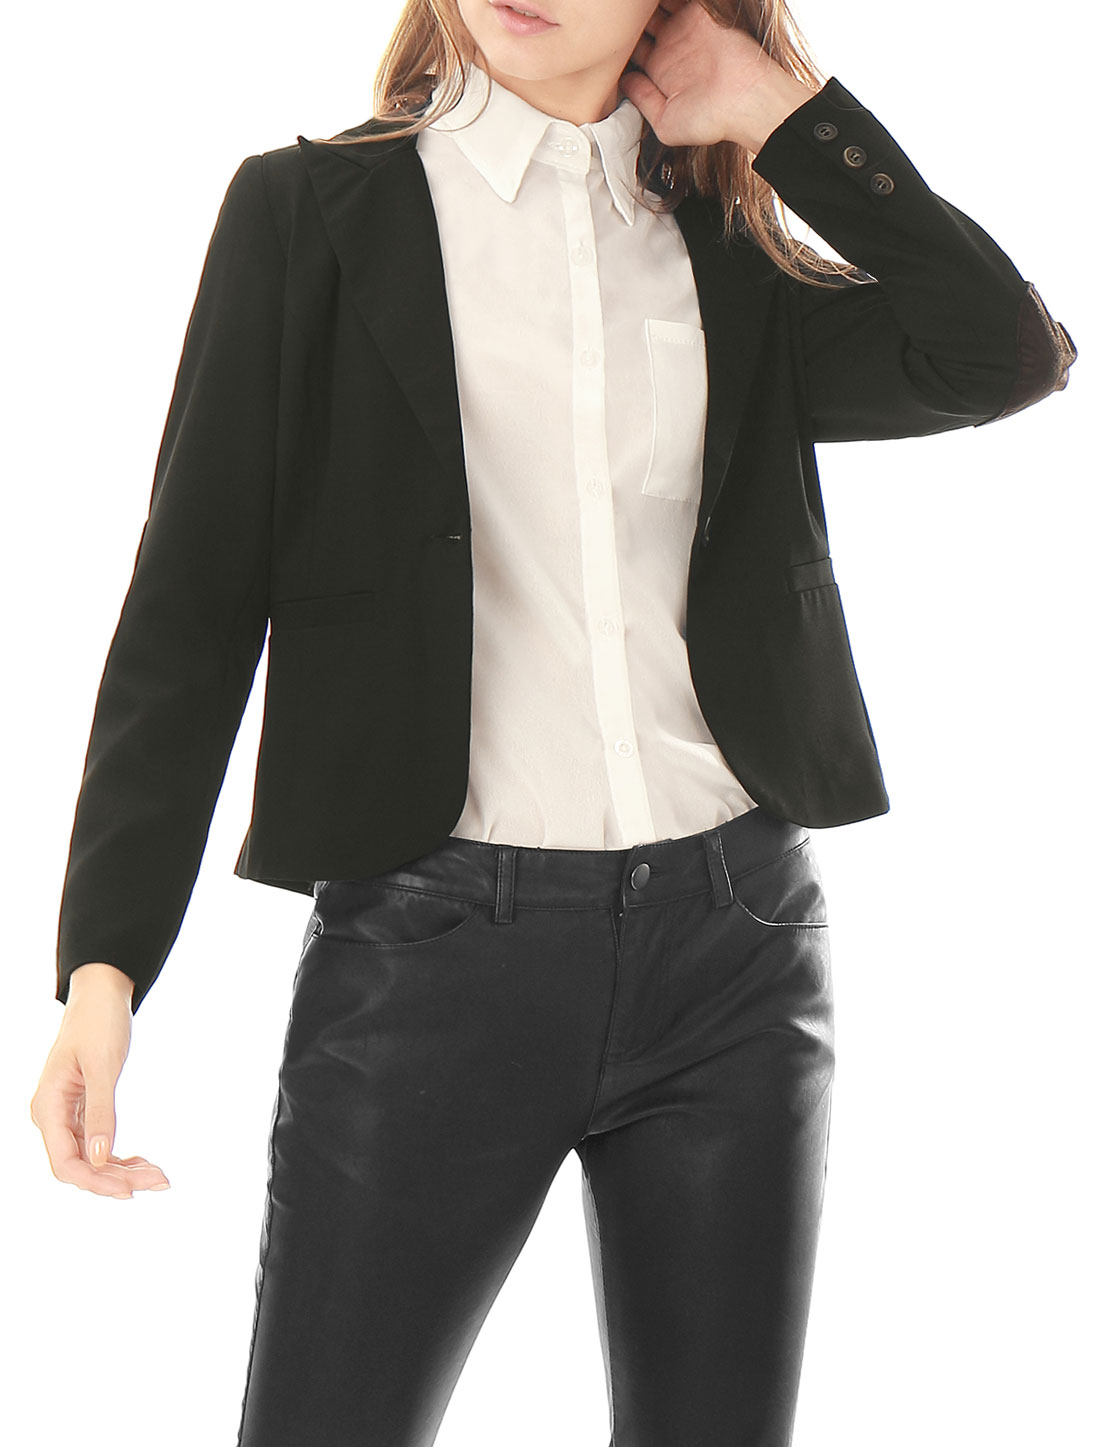 Women Peaked Lapel One-Button Elbow-Patch Blazer Black XS